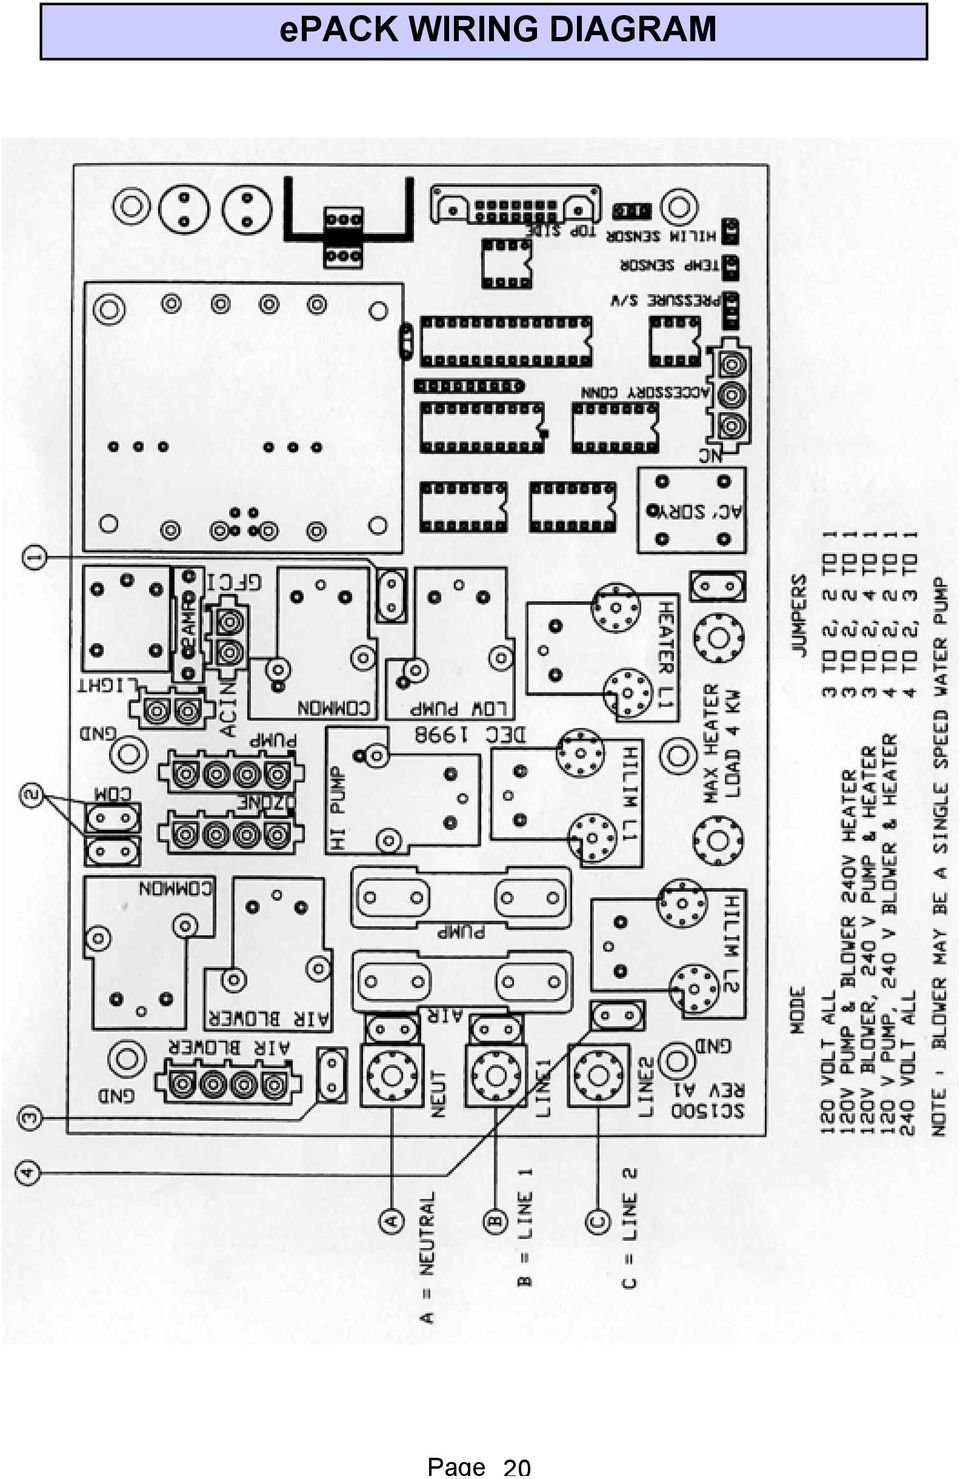 Smartouch Digital User Manual 701 W Foothill Blvd Azusa Ca 626 Wiring Diagram For Air Blower